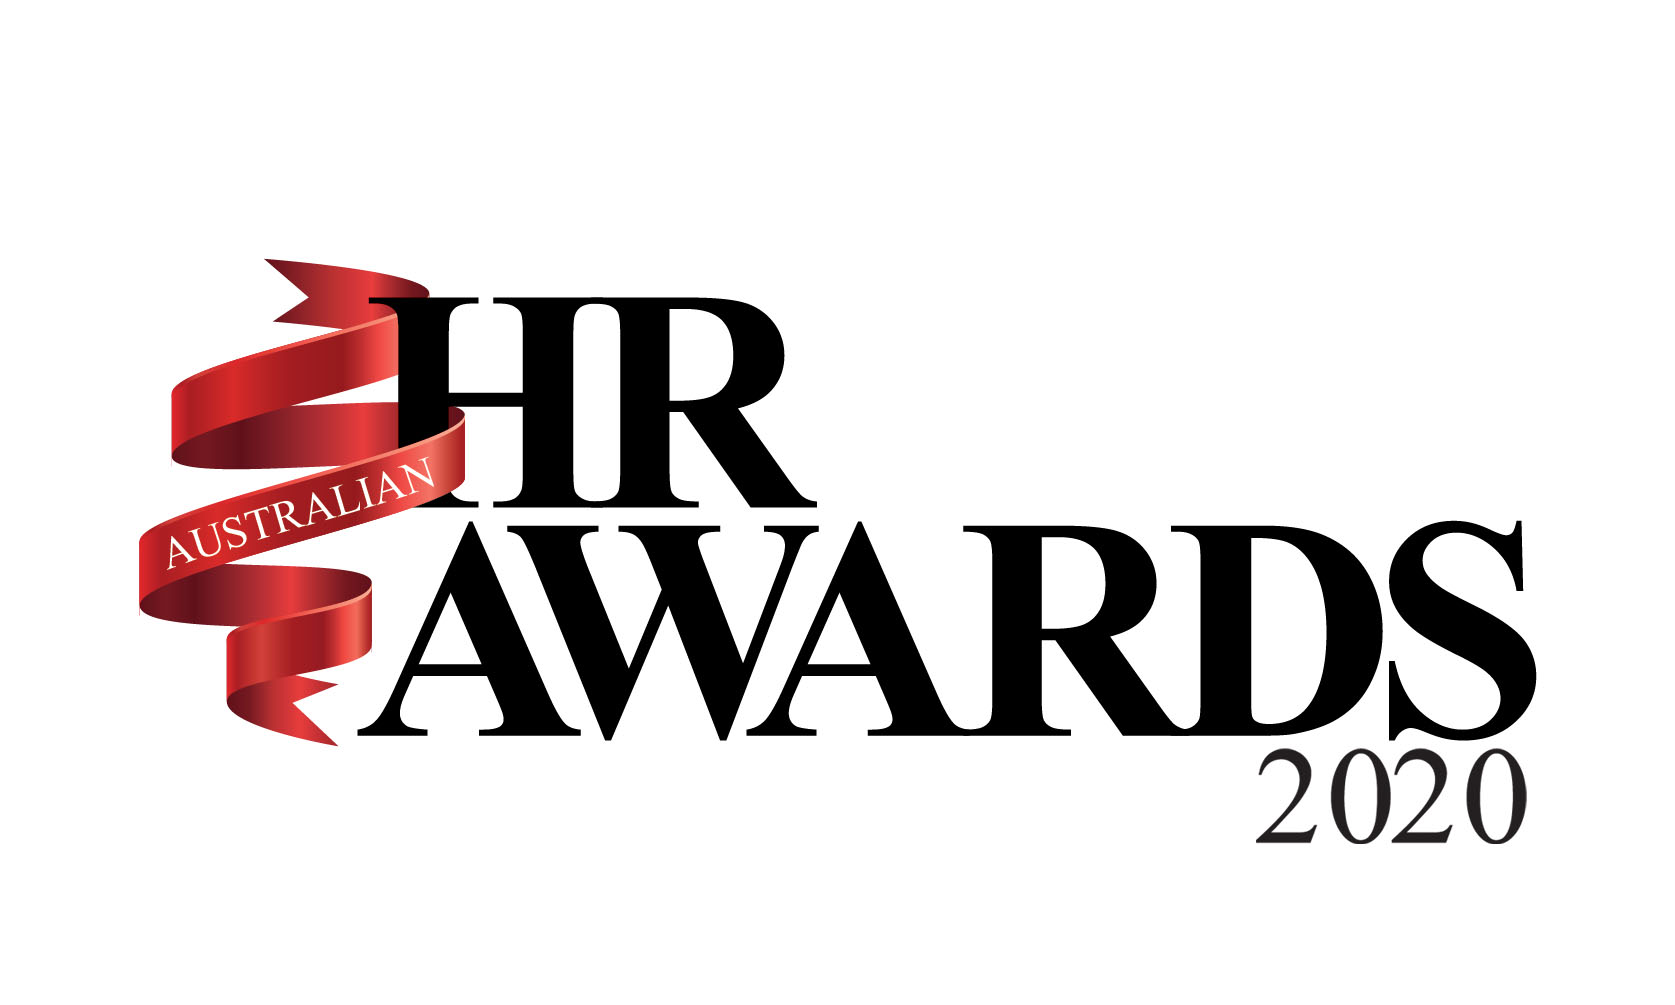 Australian HR Awards 2020: Full list of winners and excellence awardees